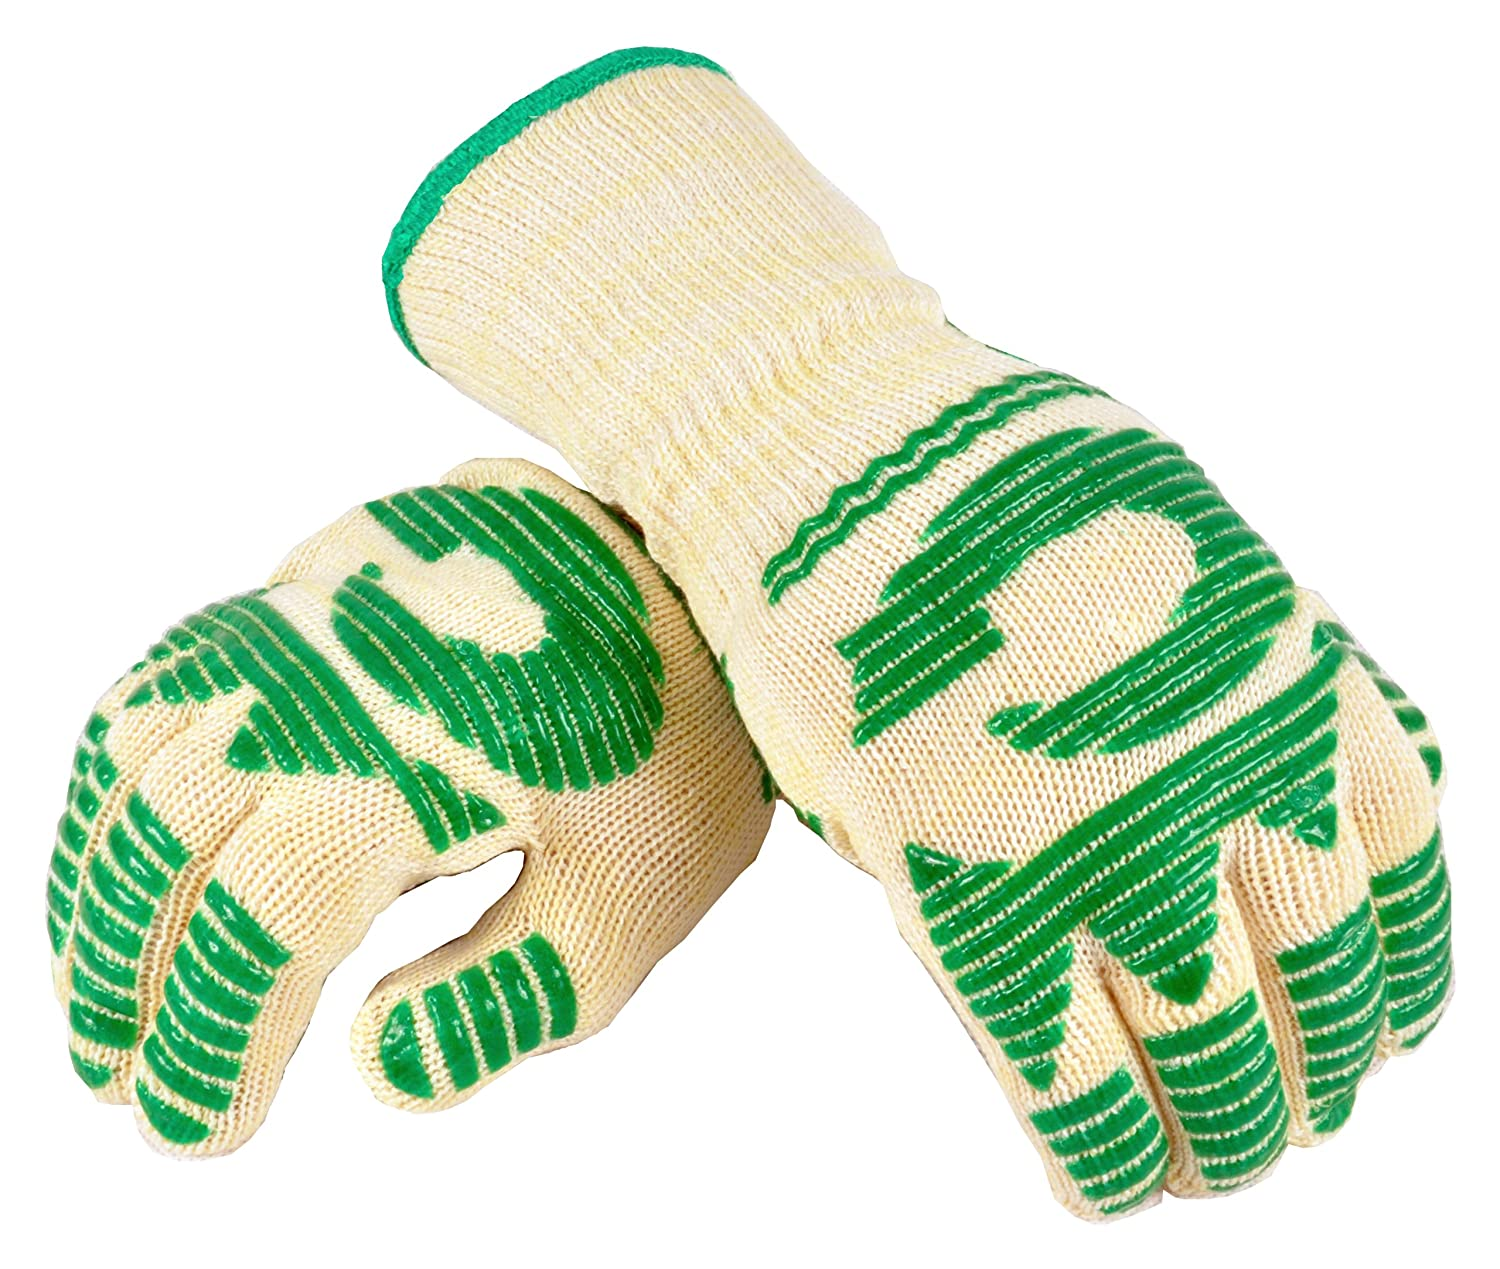 GF Gloves 1683M-12 Exclusive Oven Withsta Surprise price Resistant store Heat